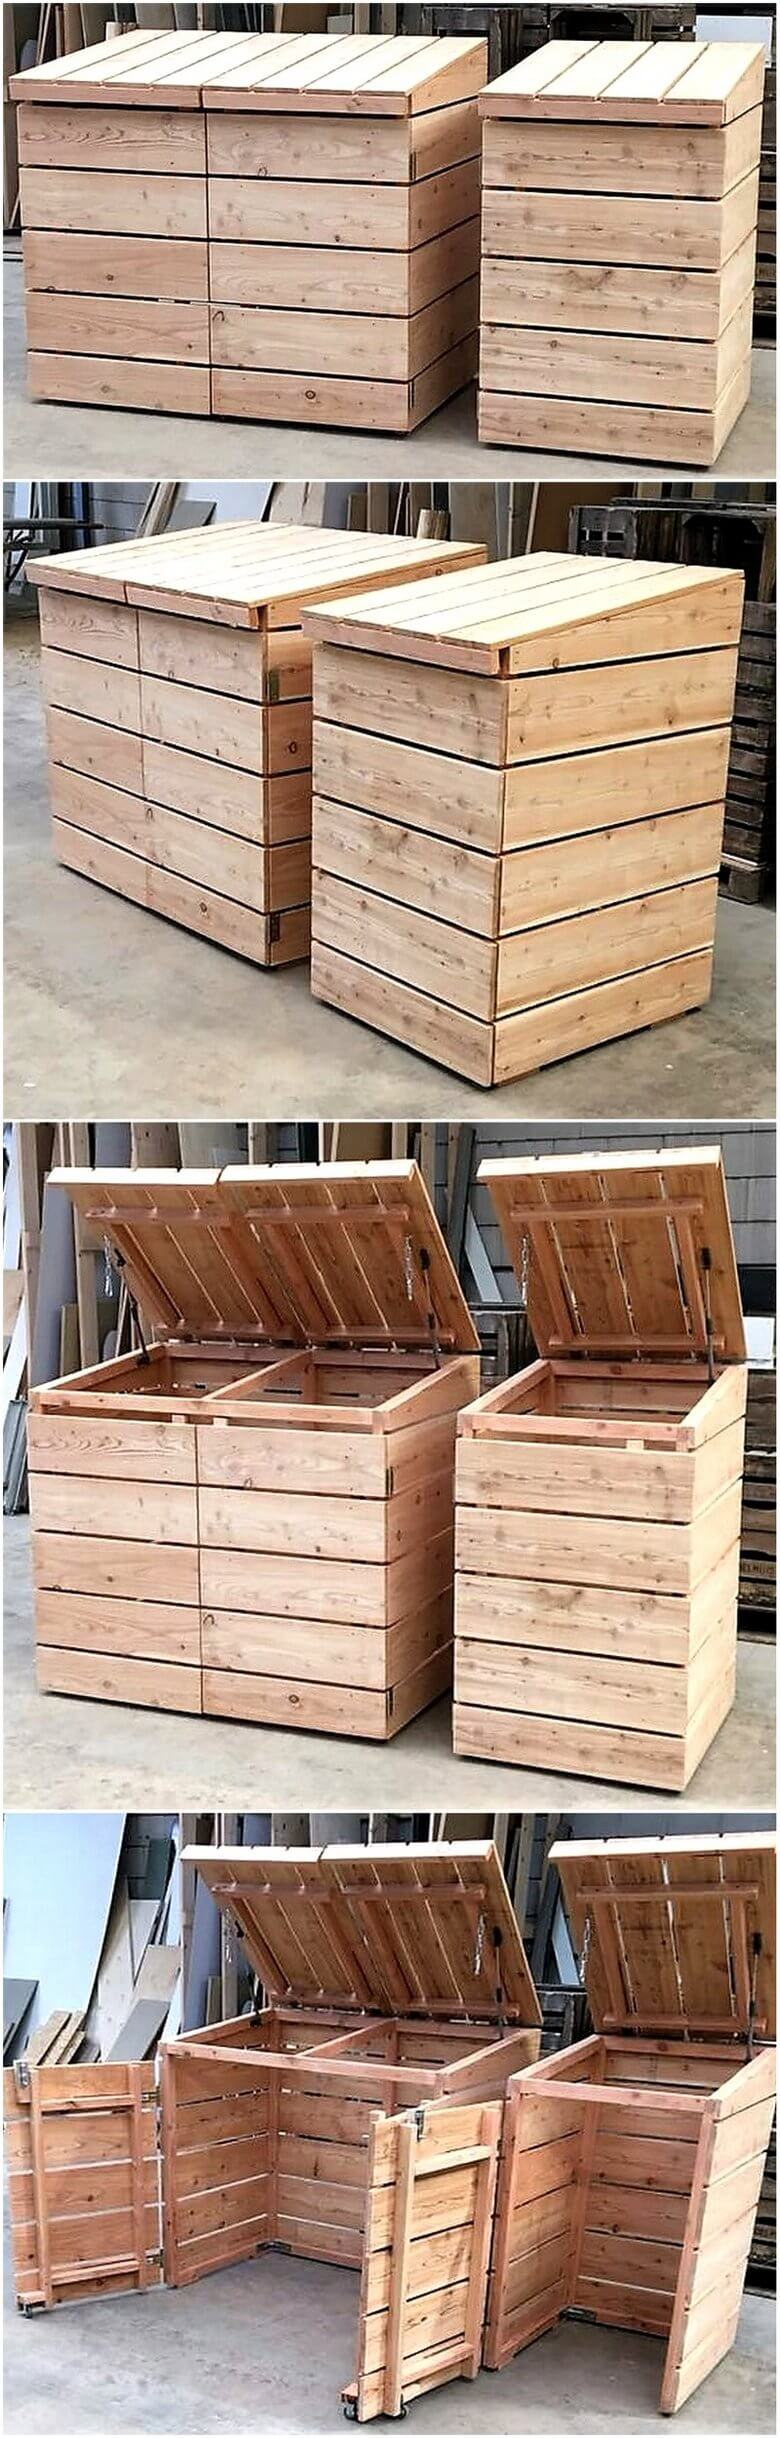 Creative Ideas for Recycling Used Wooden Pallets | Wood ...